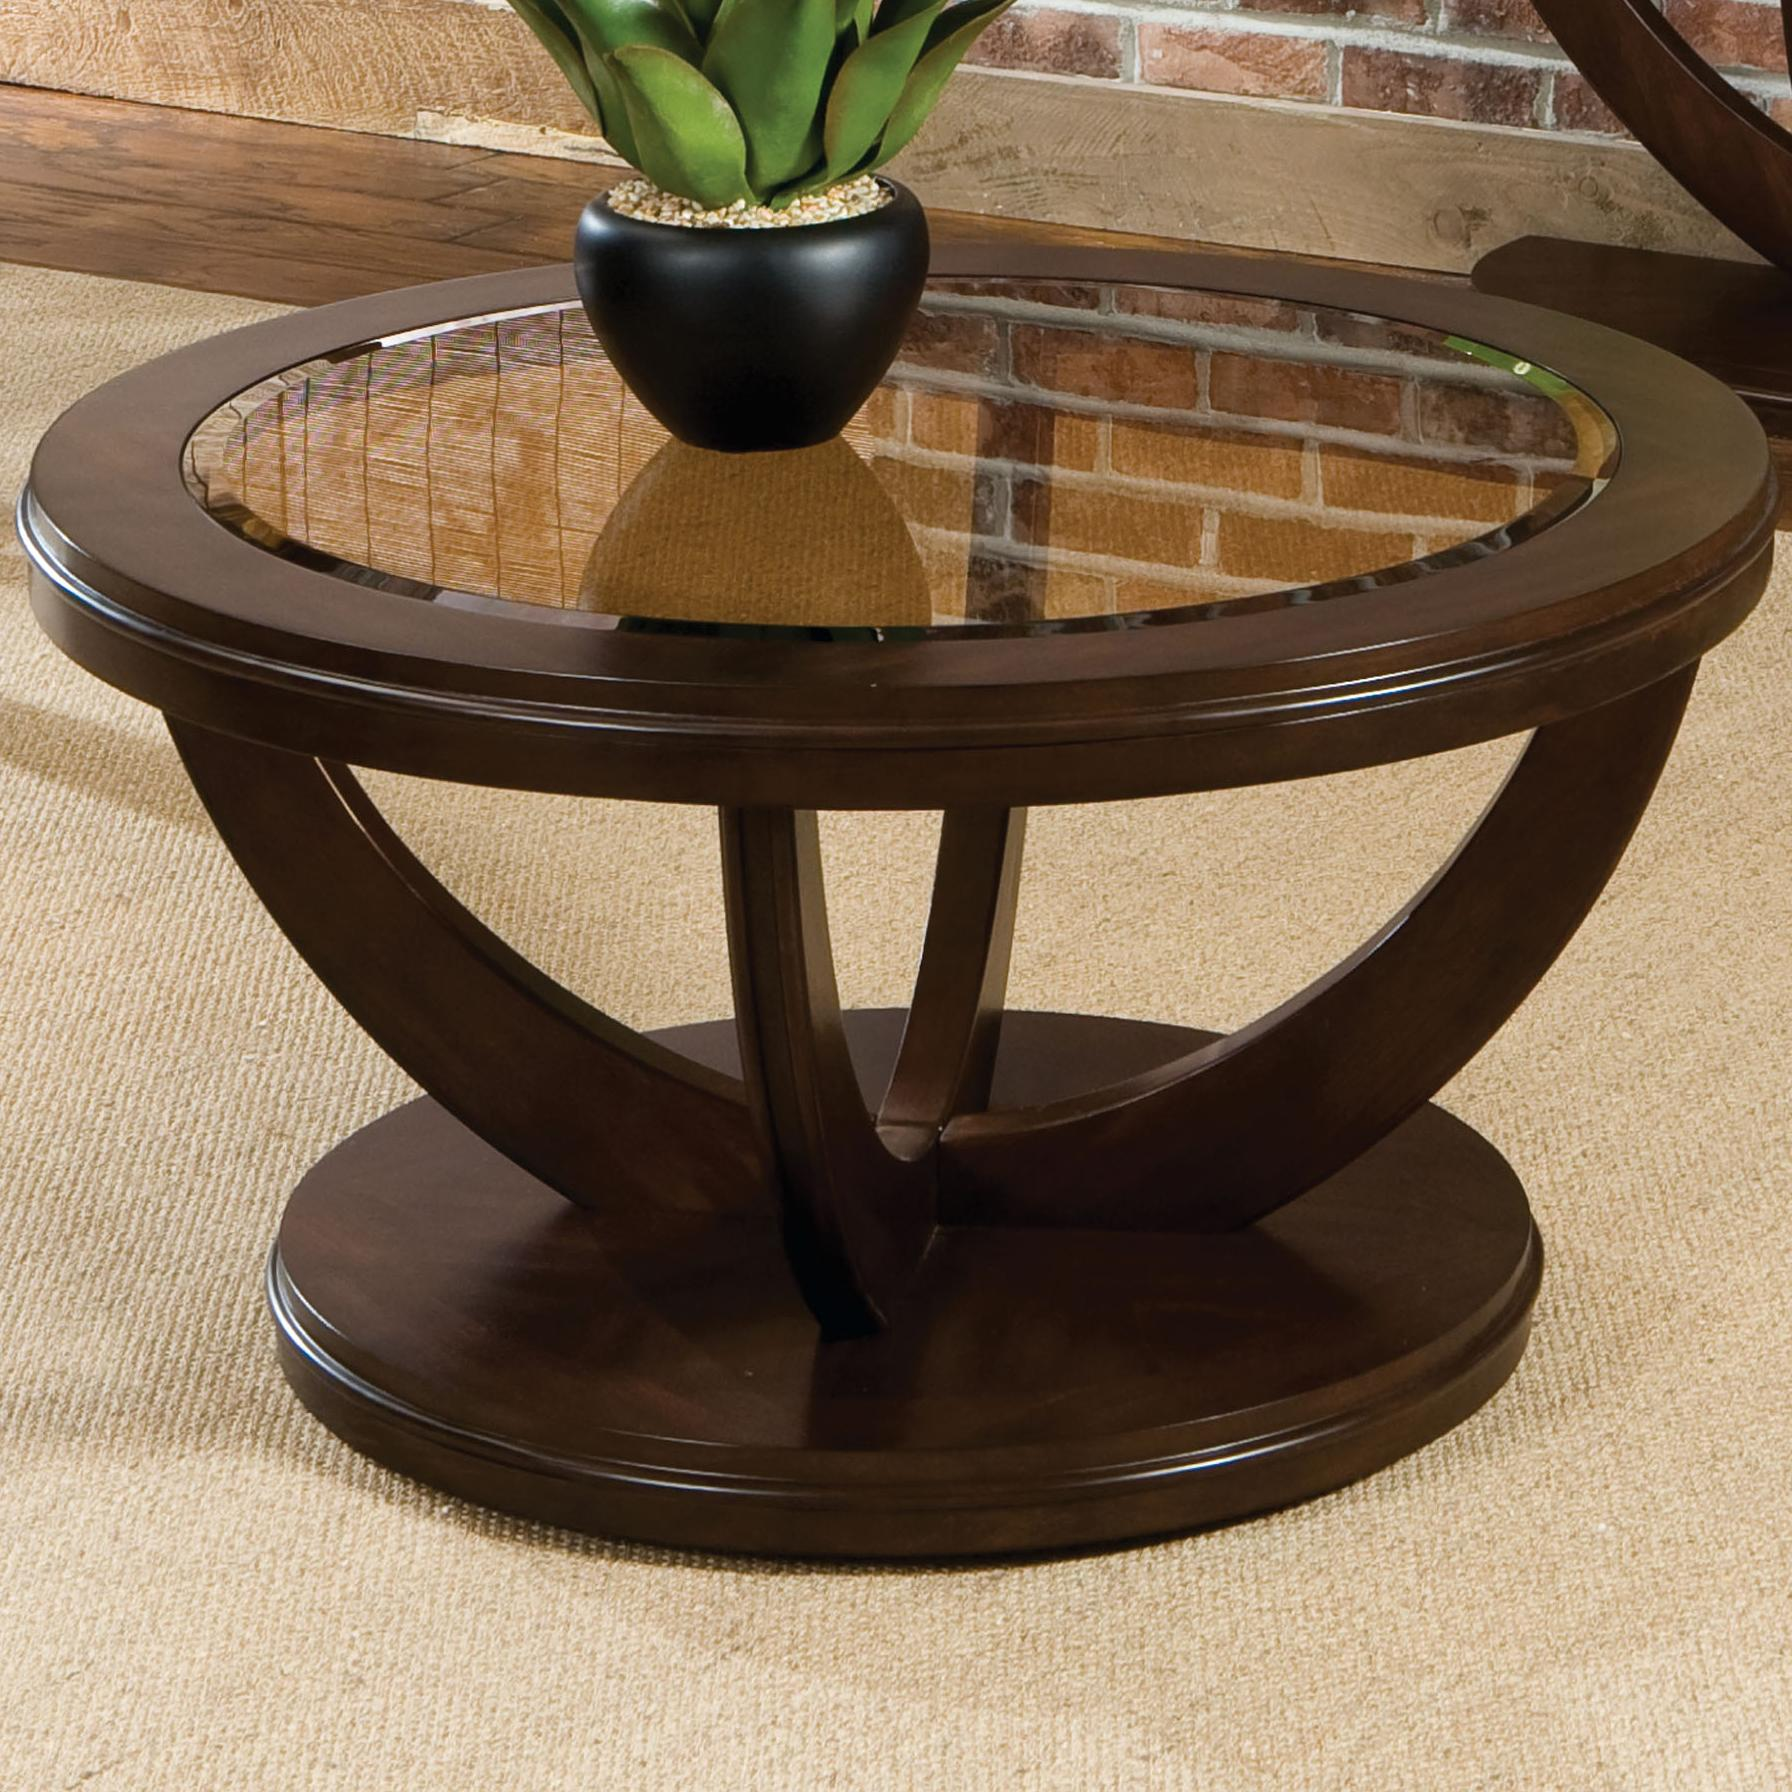 Round Cocktail Table With Glass Top By Standard Furniture